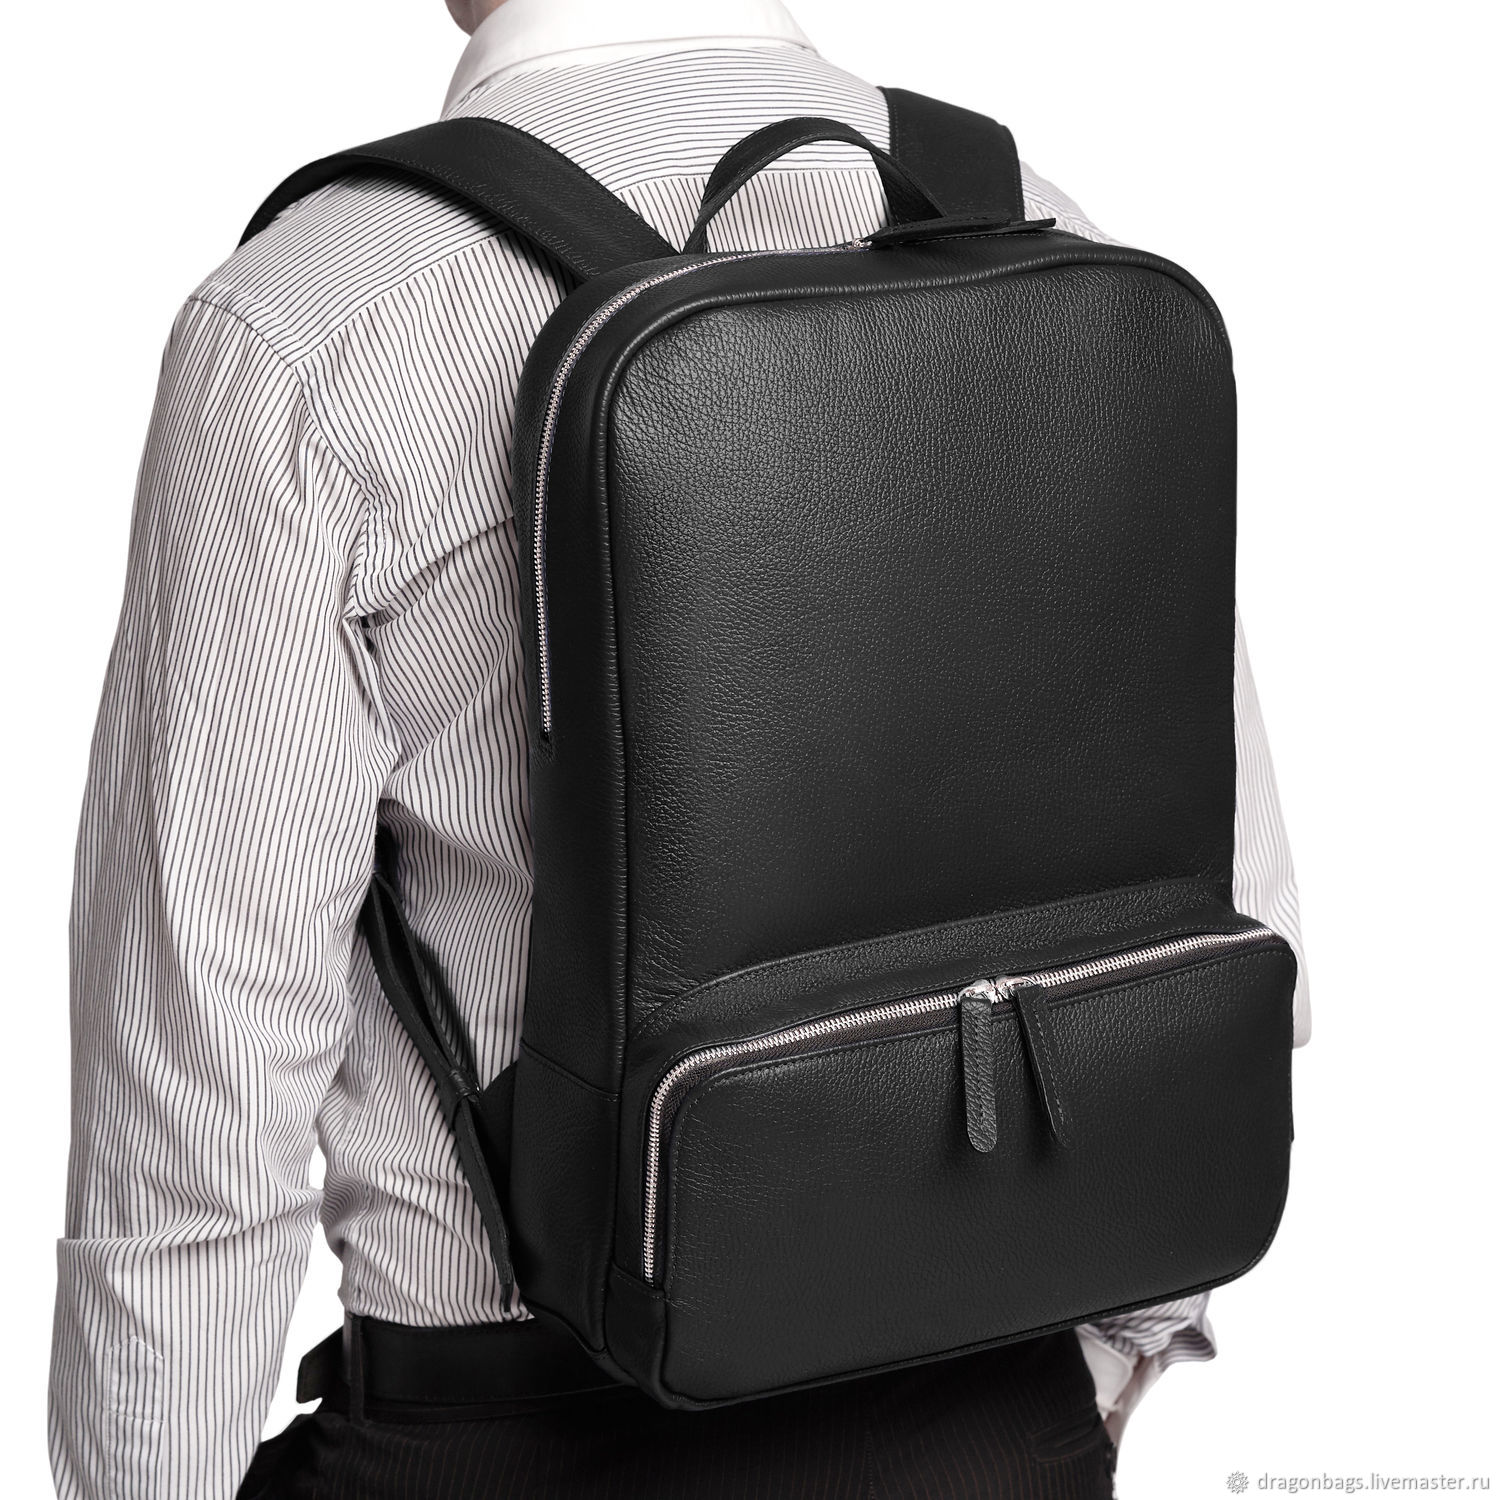 Backpack Leather Male Roy Black Shop Online On Livemaster With